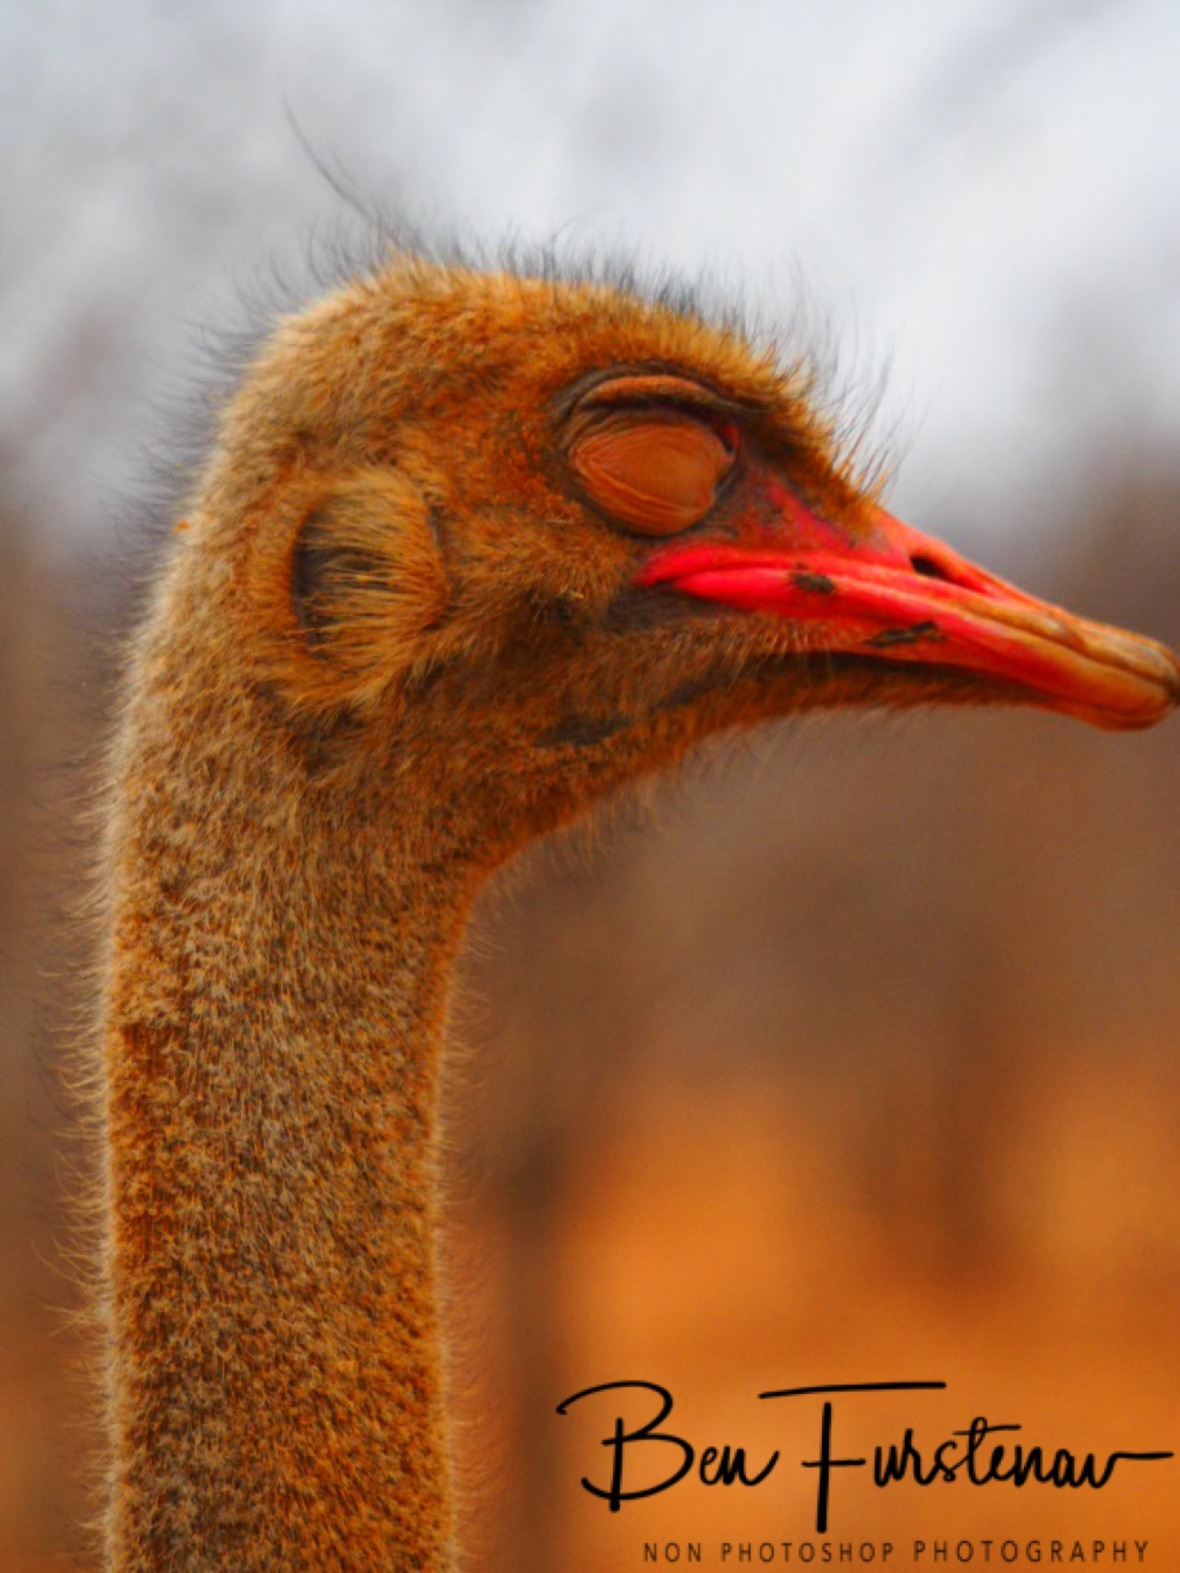 Ostrich with a sore eye, Sophienhof, Outjo, Namibia